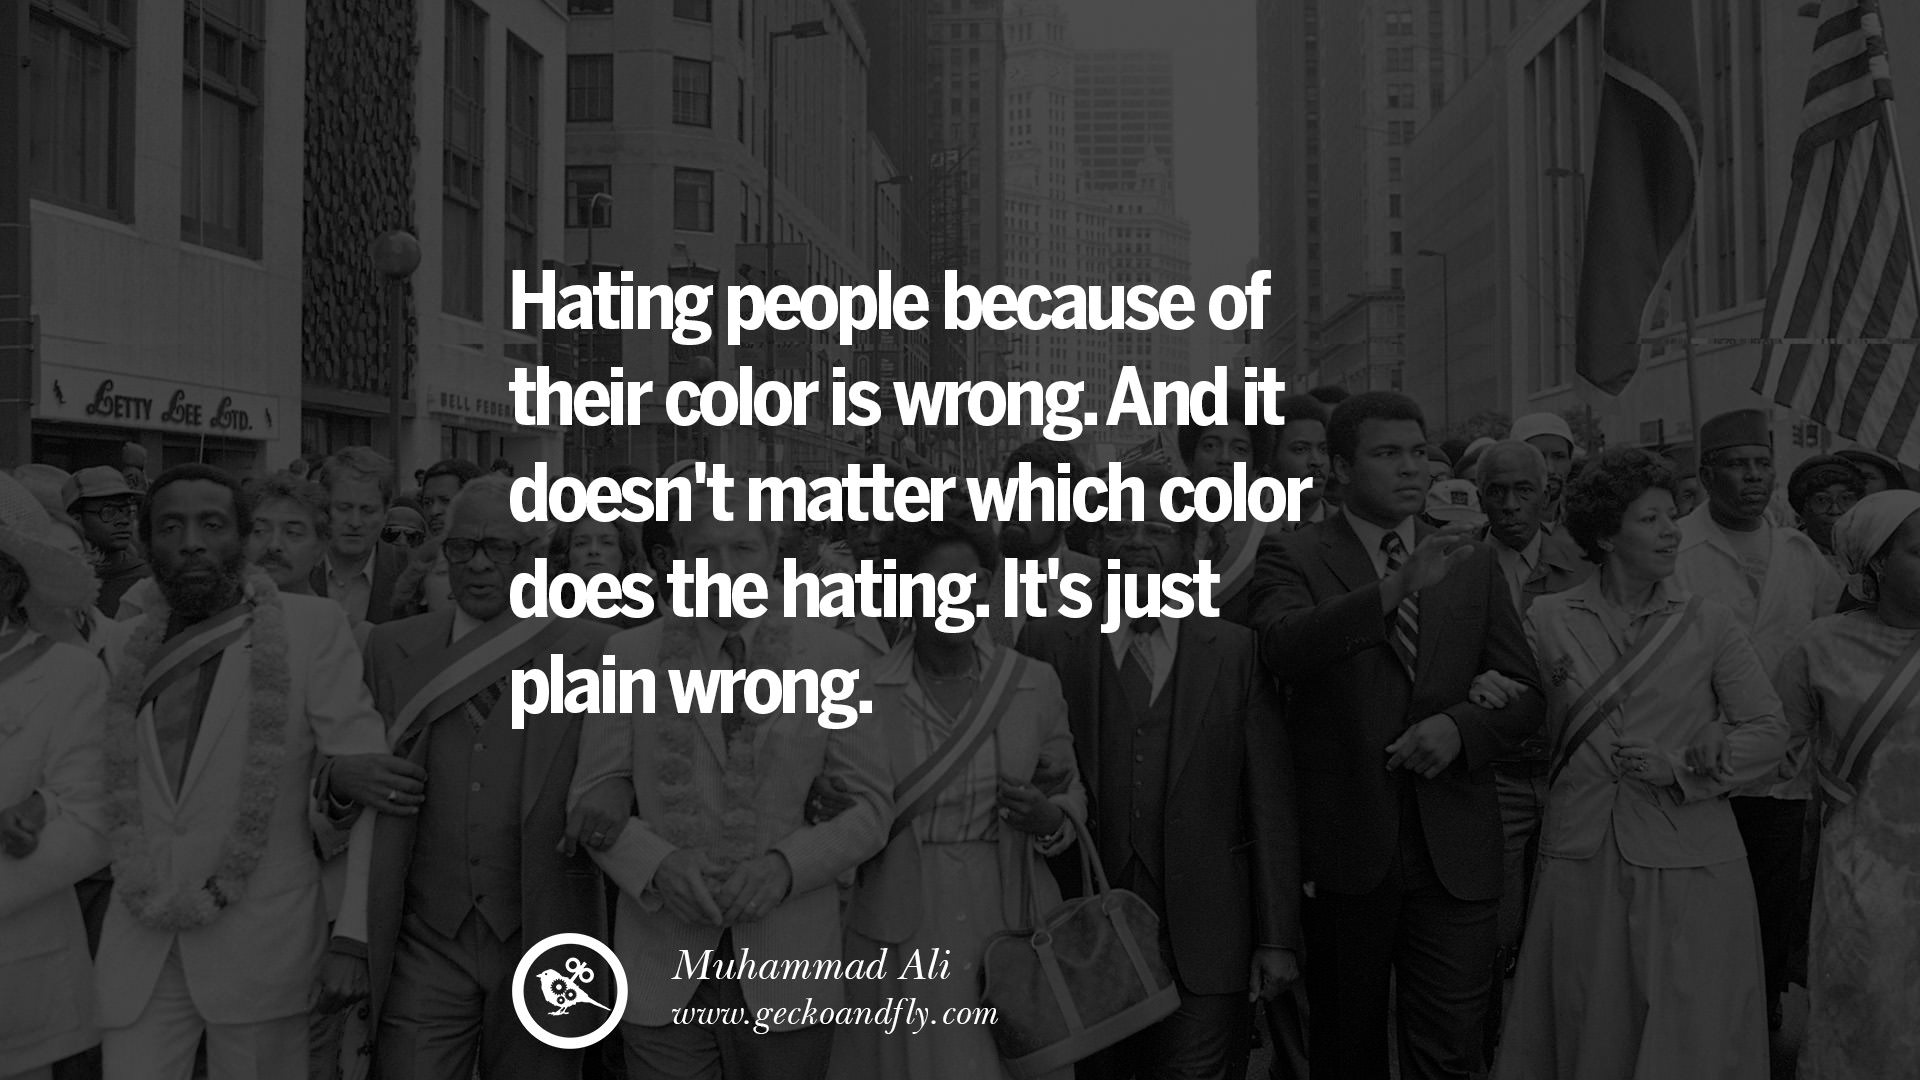 Is hating people always wrong